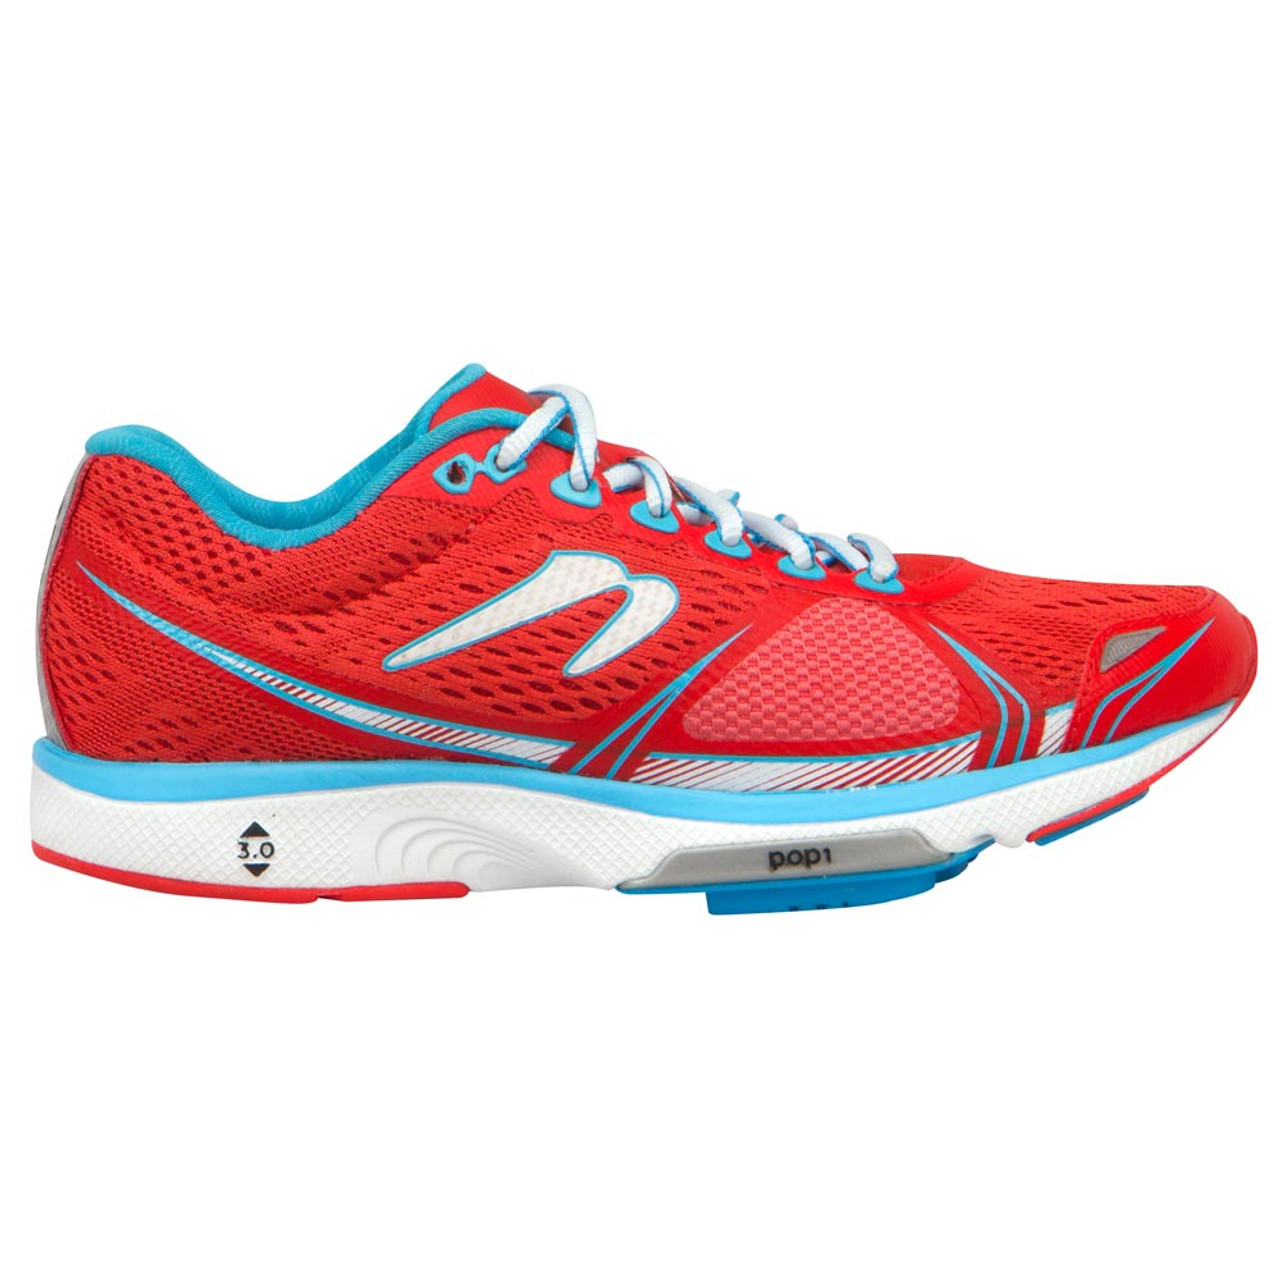 Running Shoes For Women Clearance - Newton motion v special edition women red blue